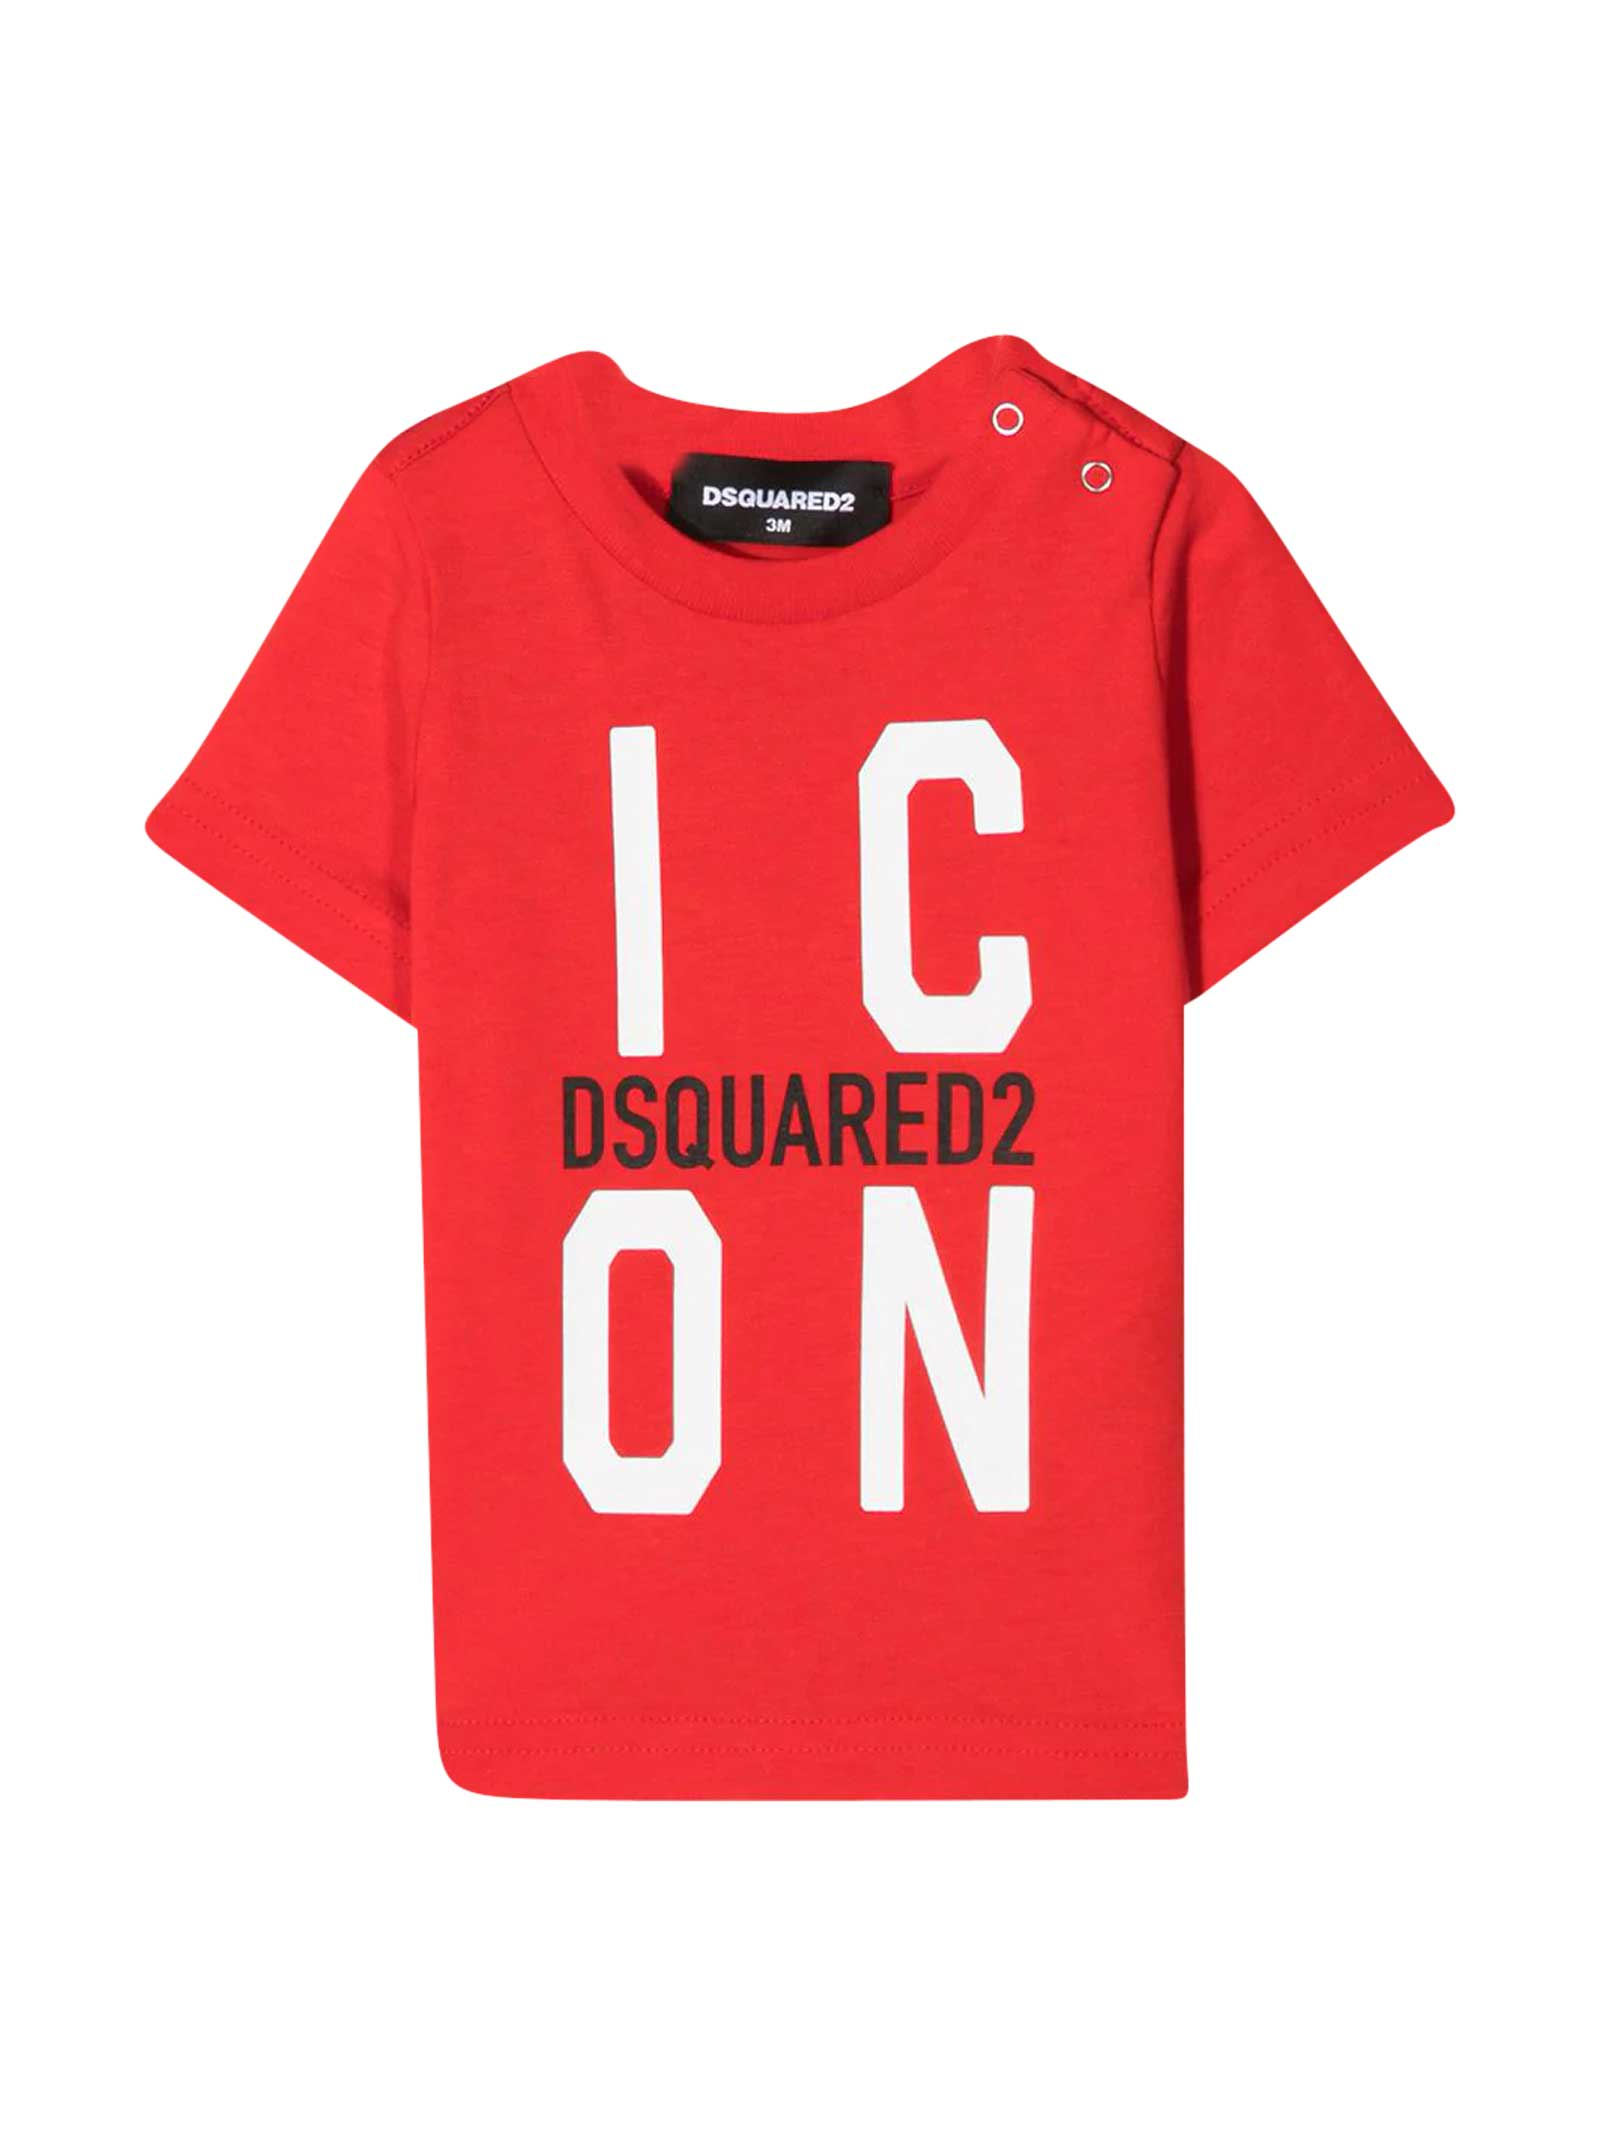 Dsquared2 RED T-SHIRT